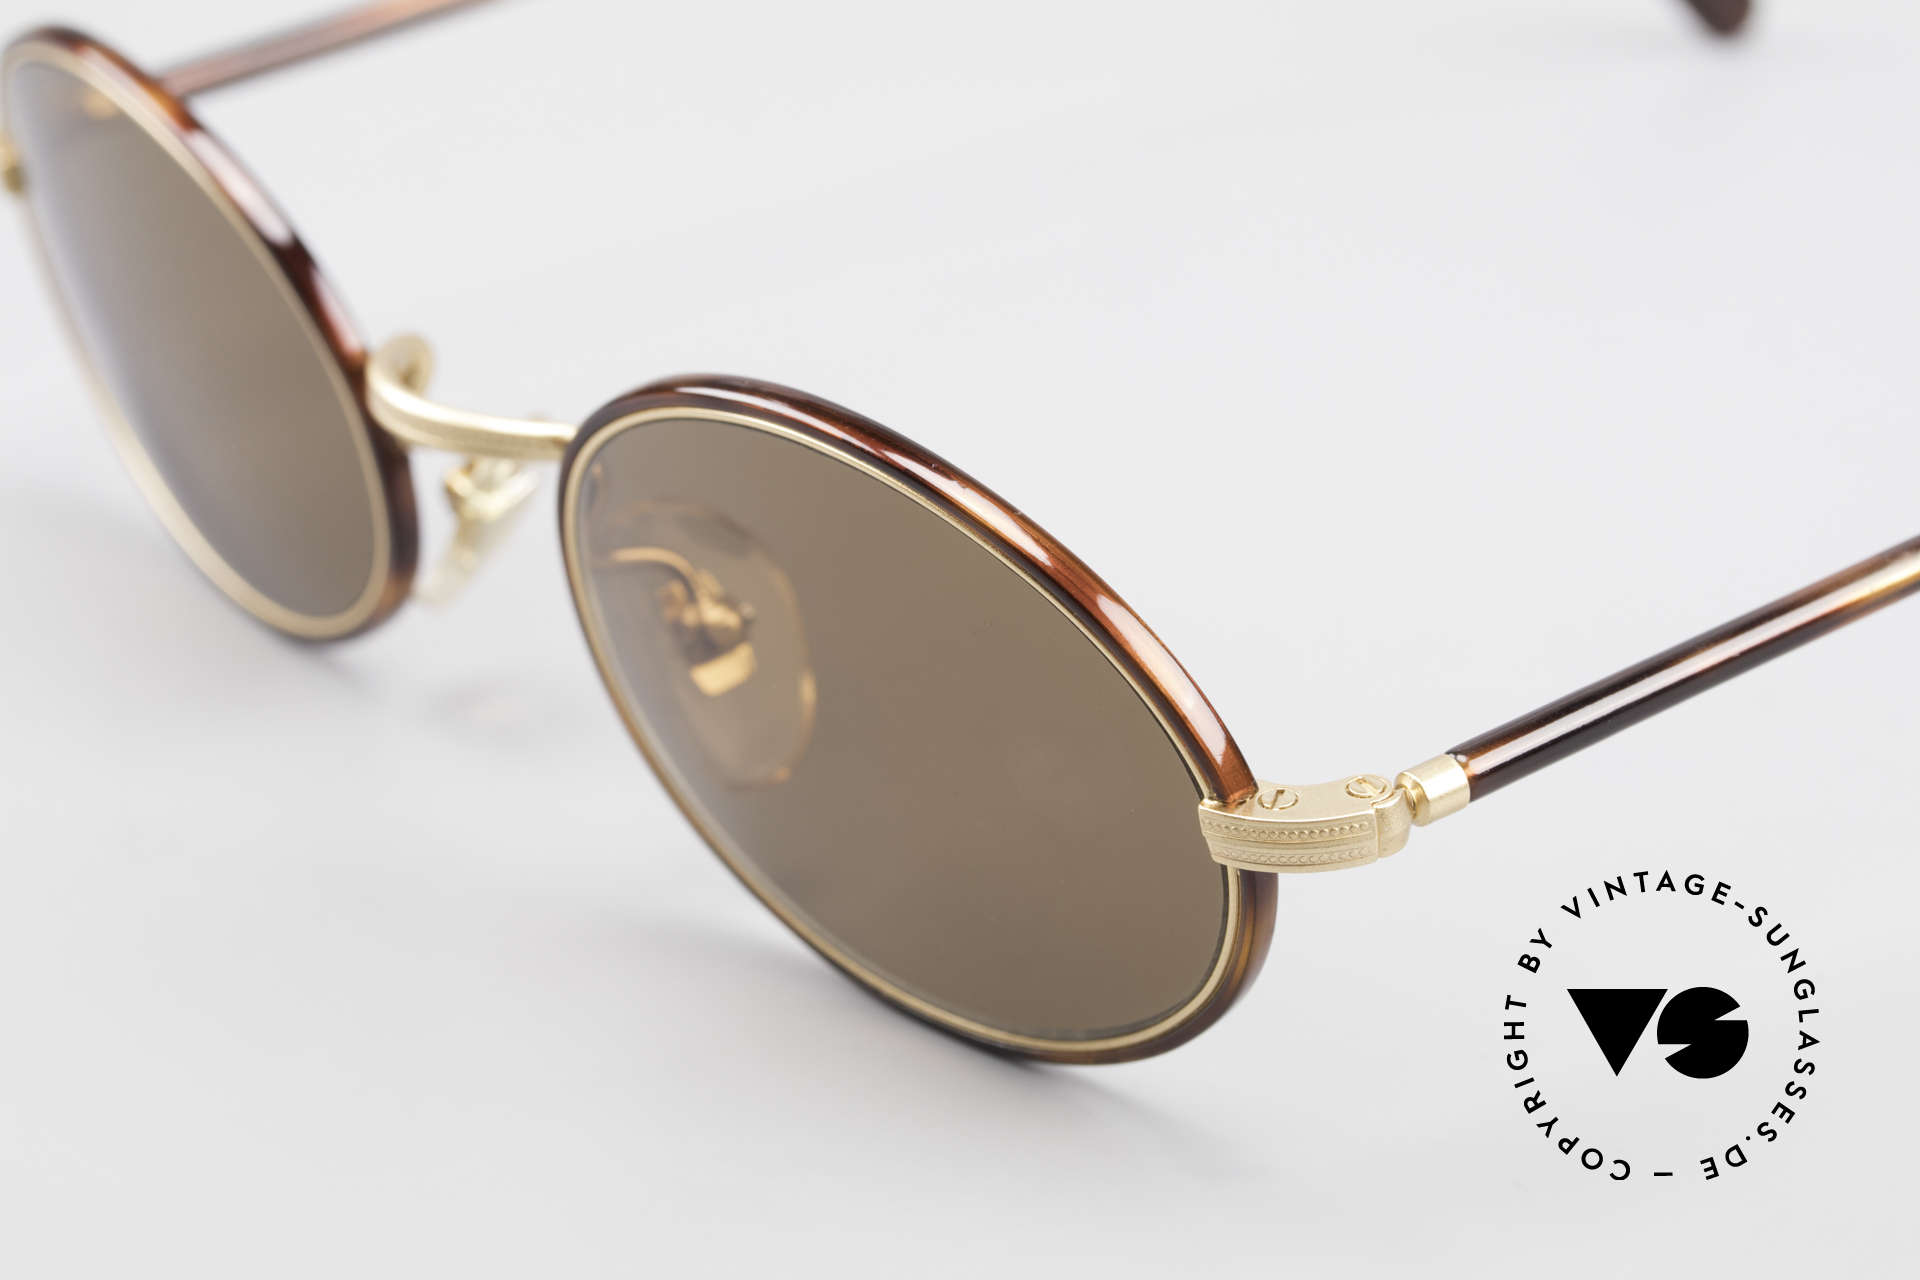 Cutler And Gross 0350 Oval Vintage Sunglasses 90's, very elegant combination of materials and classic colors, Made for Men and Women